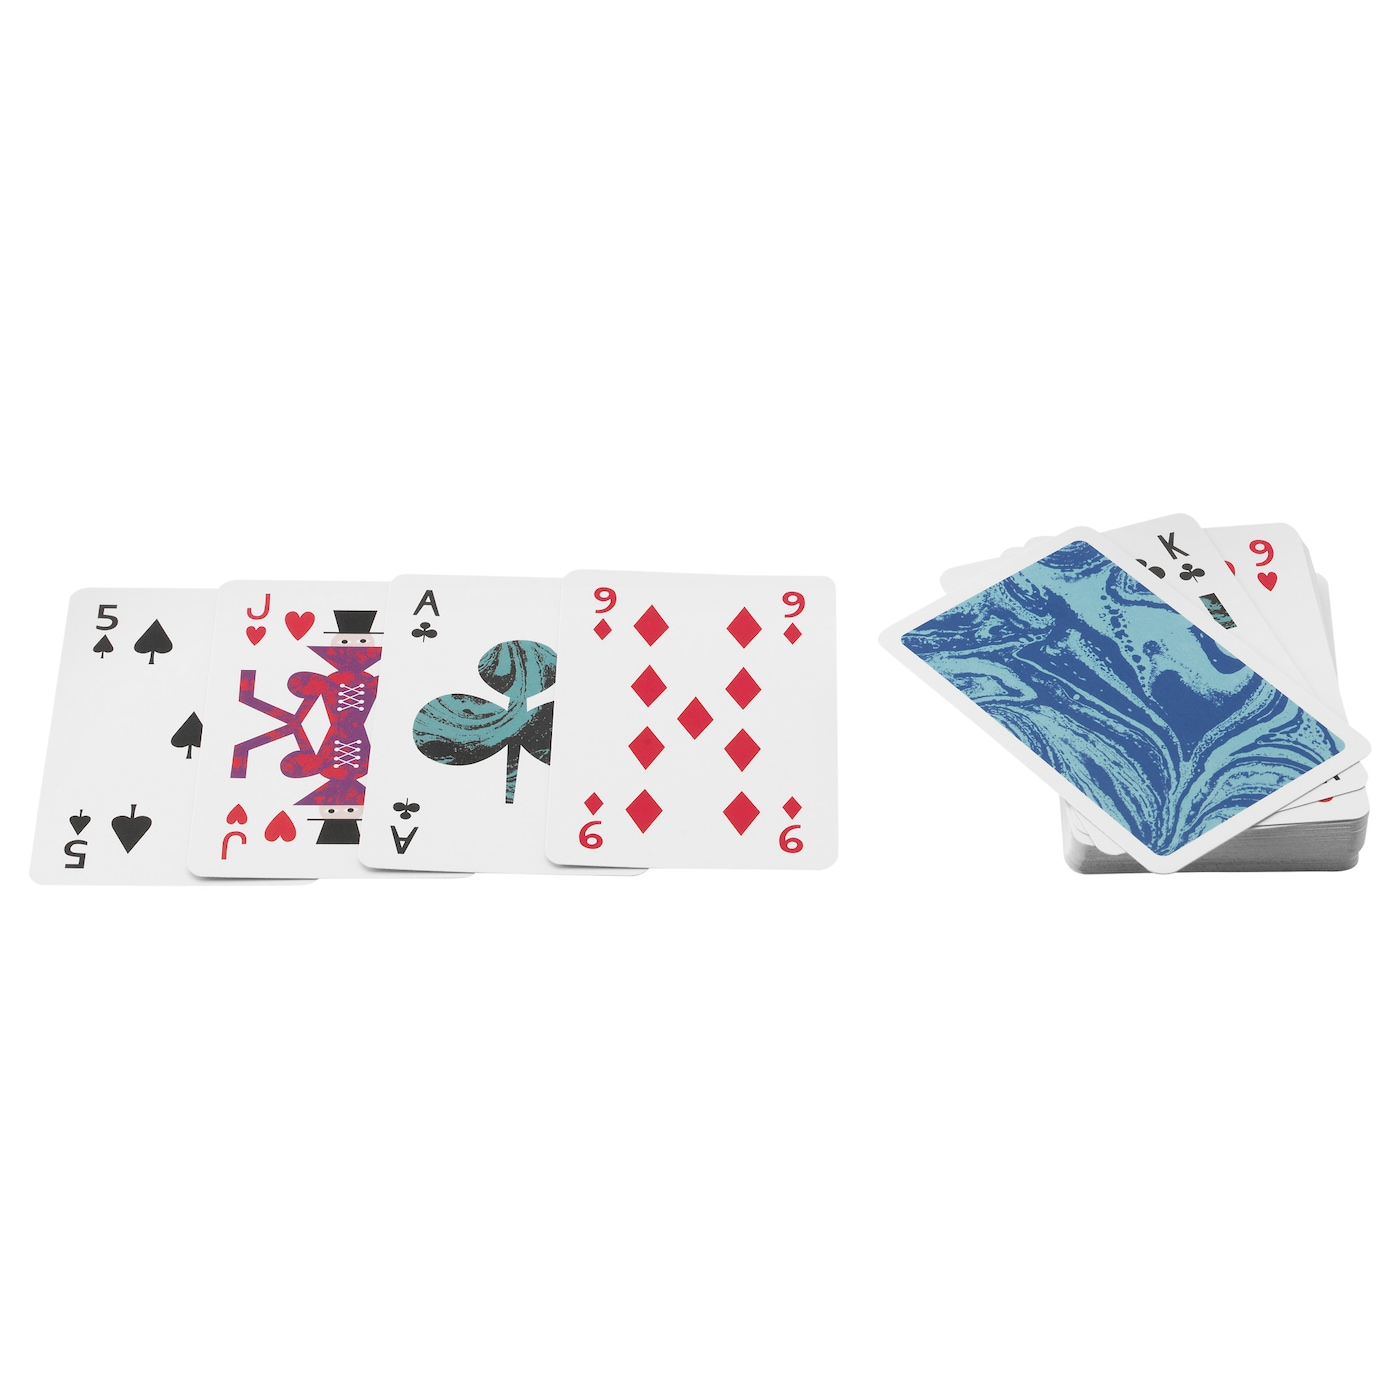 lattjo playing cards ikea. Black Bedroom Furniture Sets. Home Design Ideas